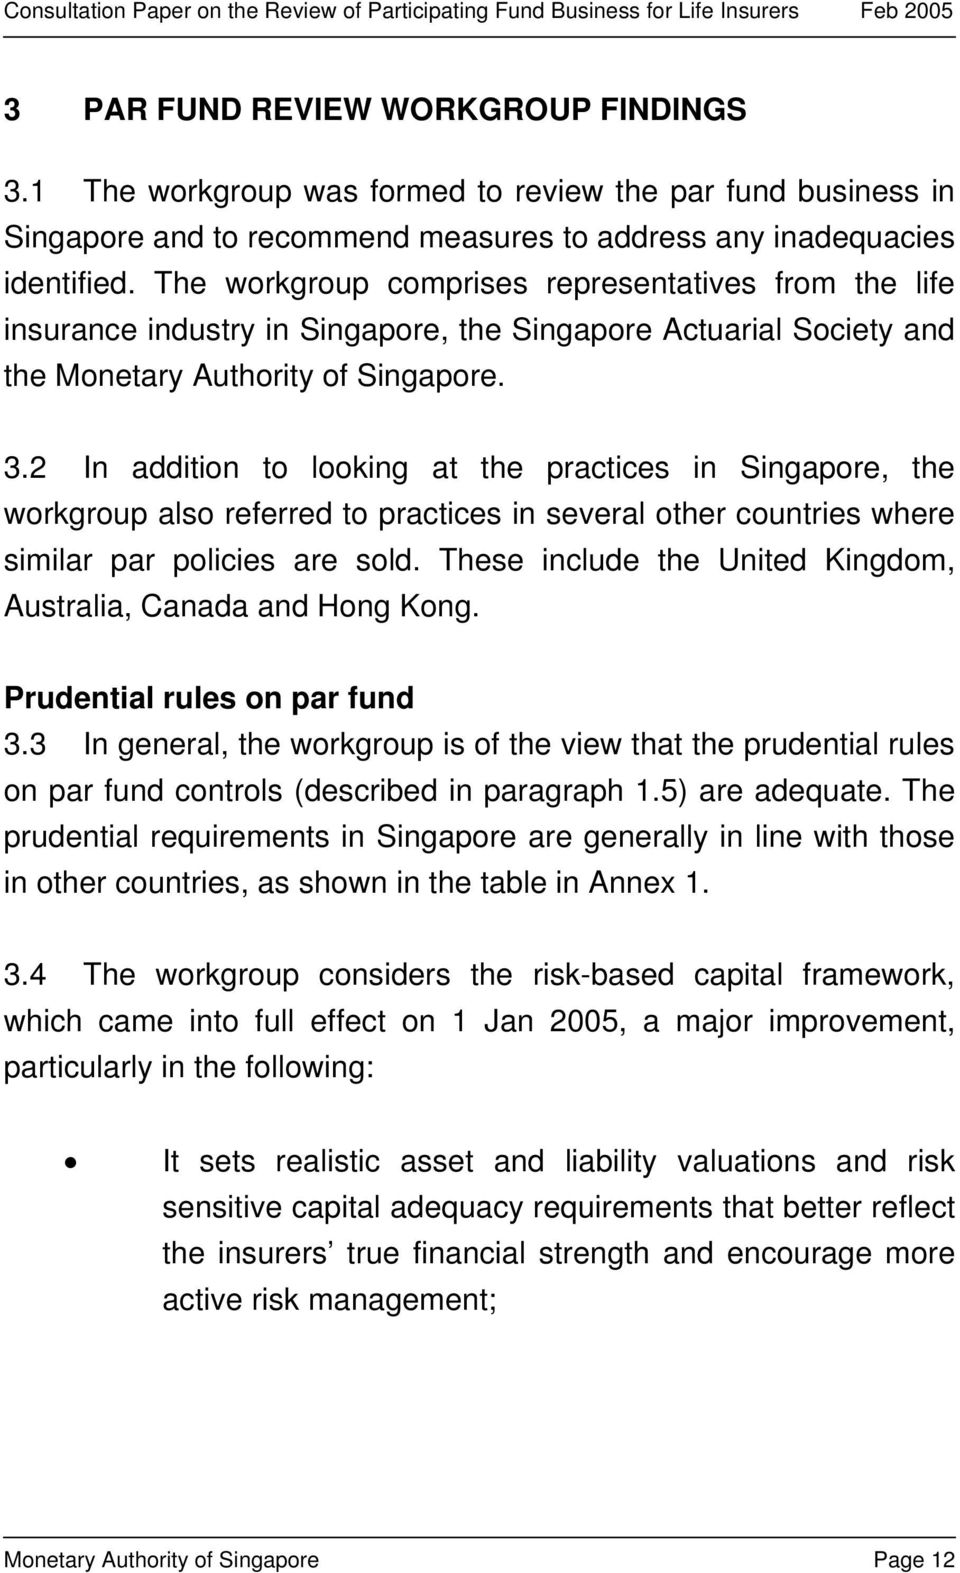 2 In addition to looking at the practices in Singapore, the workgroup also referred to practices in several other countries where similar par policies are sold.